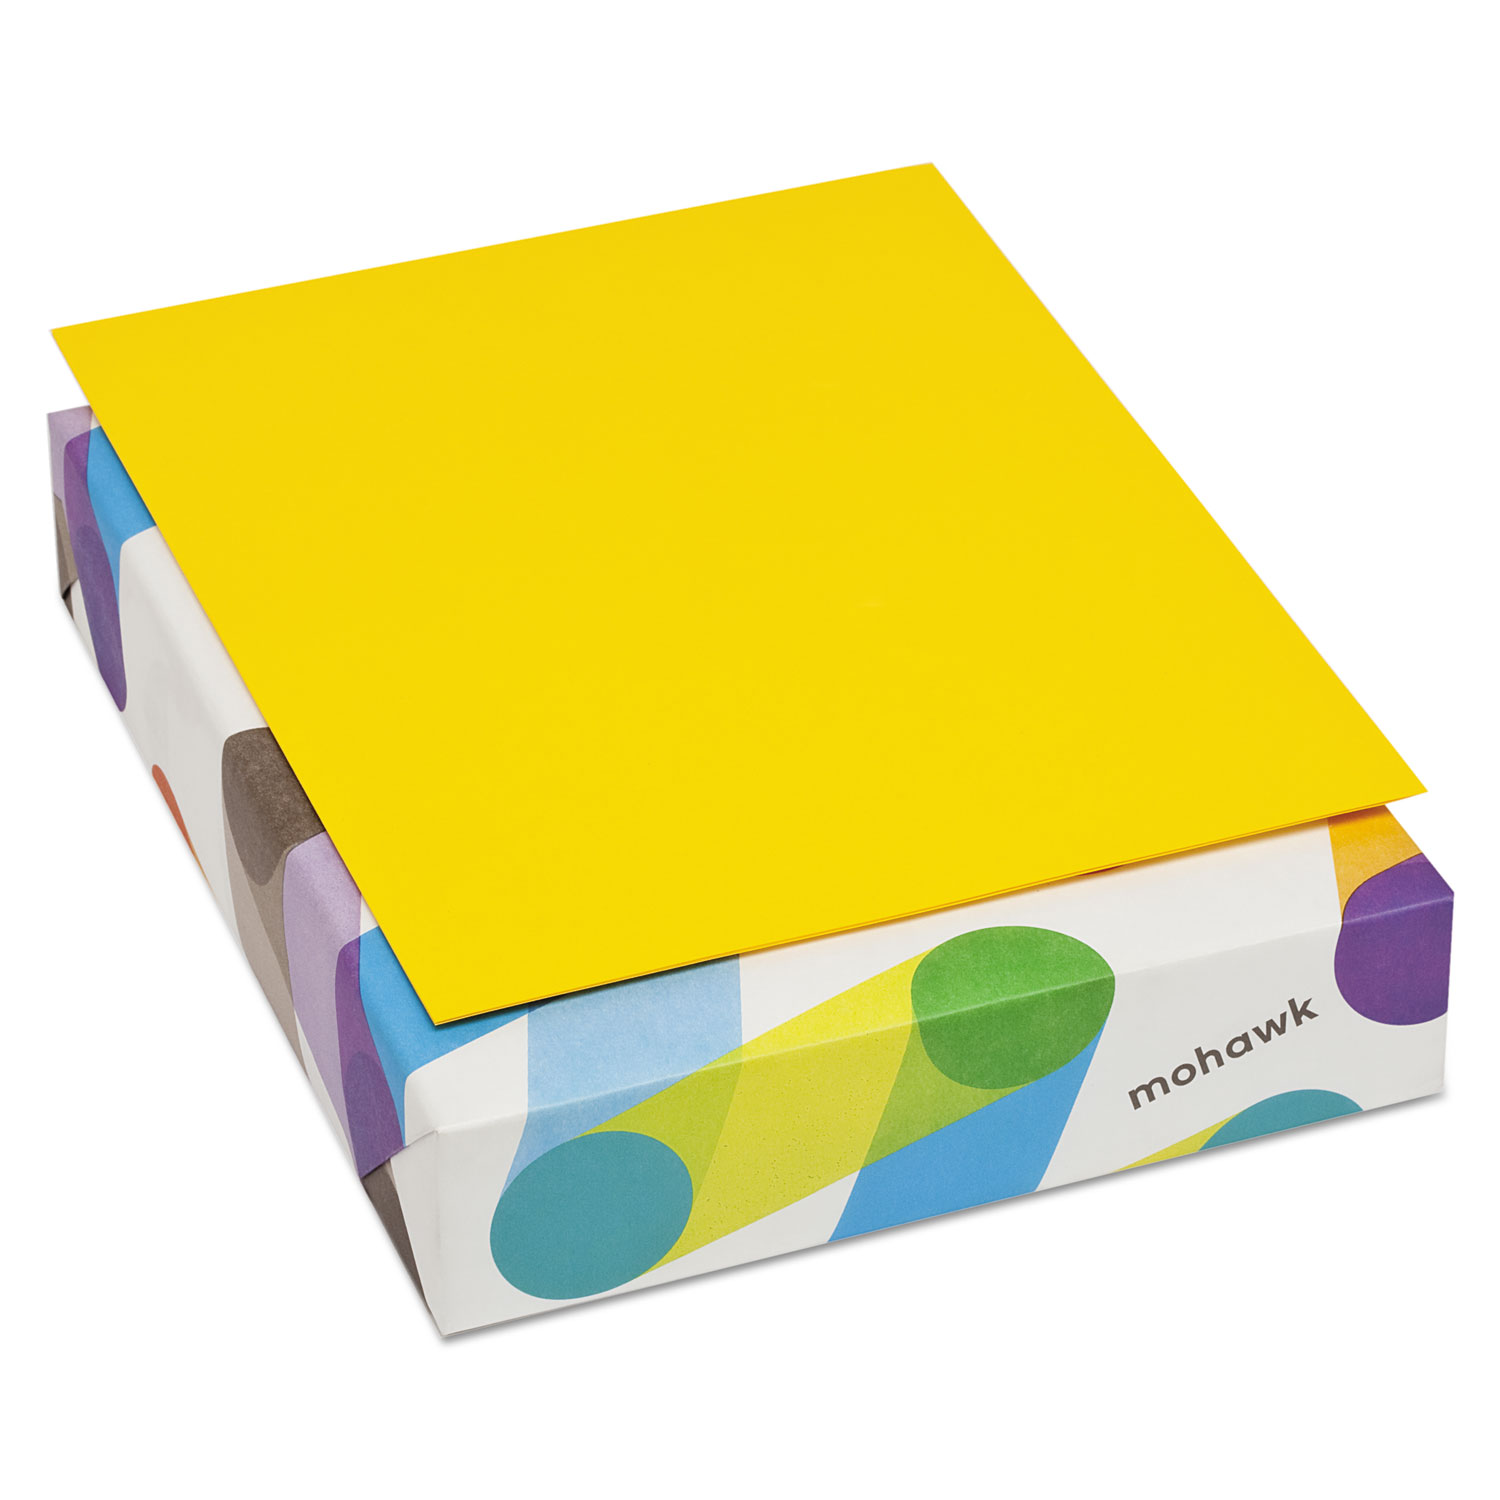 Mohawk 10299-6 Britehue Multipurpose Colored Paper, 24lb, 8 1/2 X 11, Sun Yellow, 500 Sheets